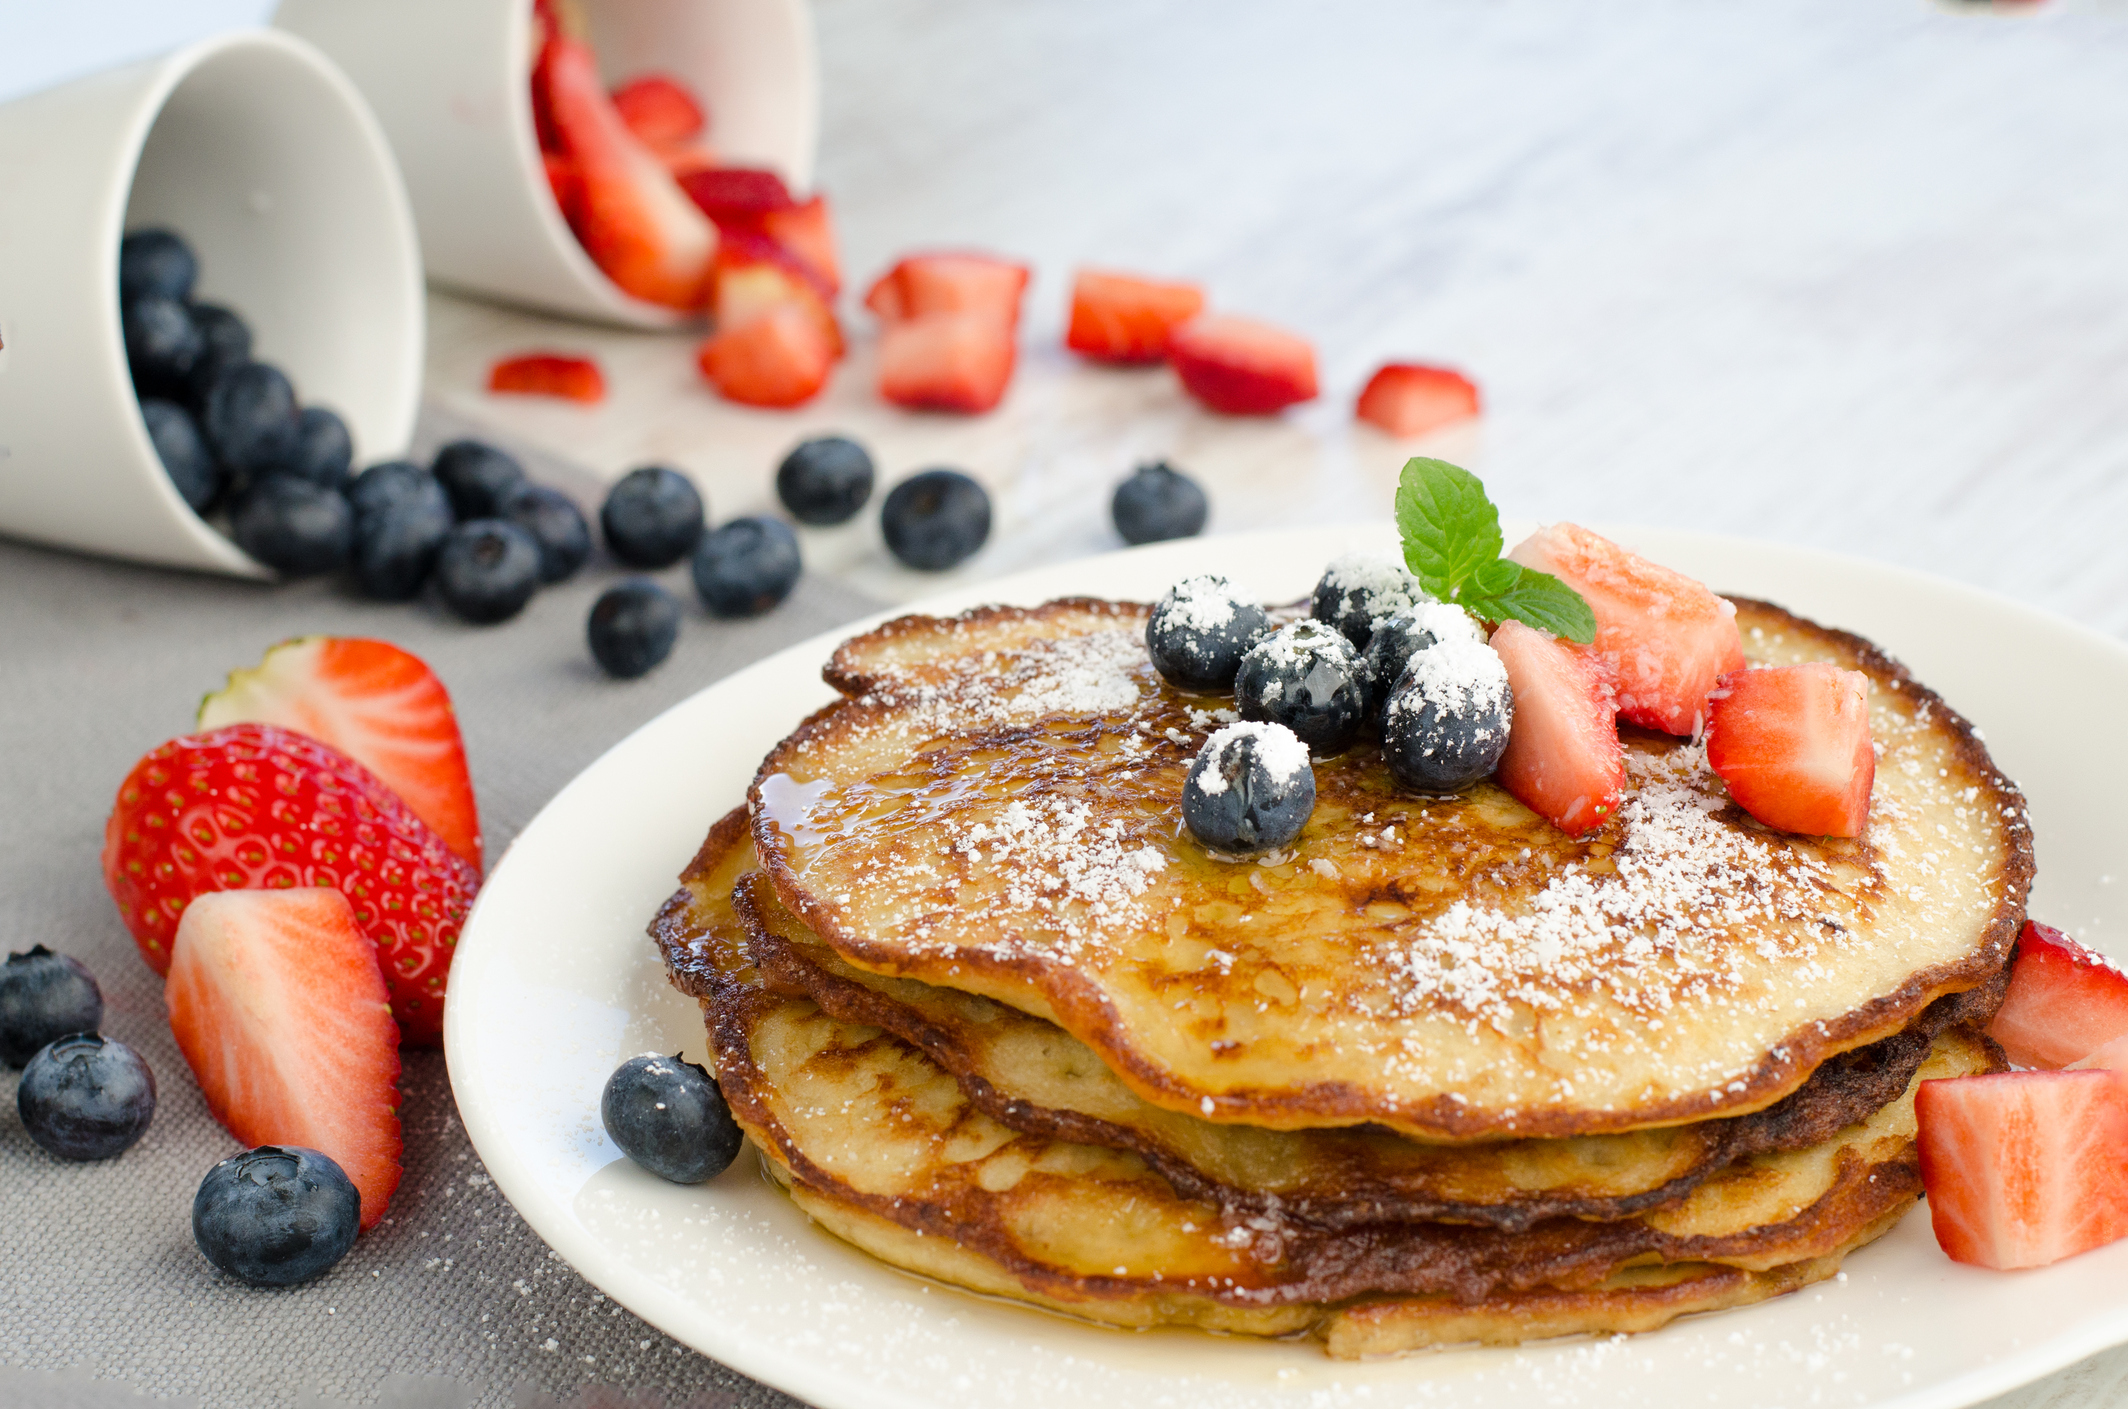 Who knew how important our weekly pancakes were? (photo by Thinkstock)